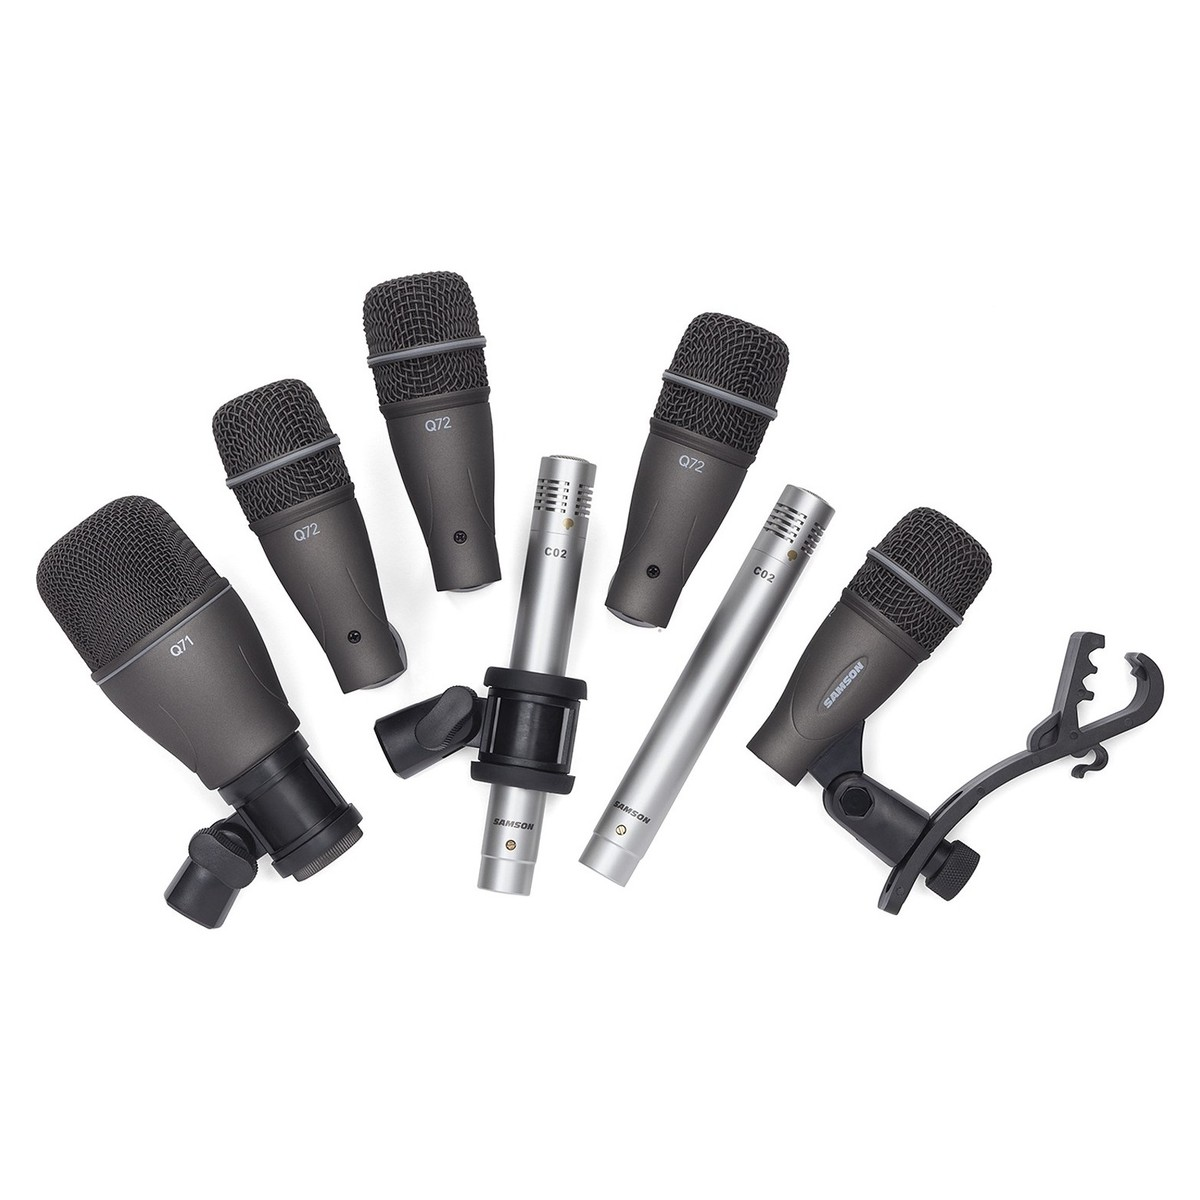 Drum Mic Setting : samson dk707 7 piece drum mic set at ~ Hamham.info Haus und Dekorationen